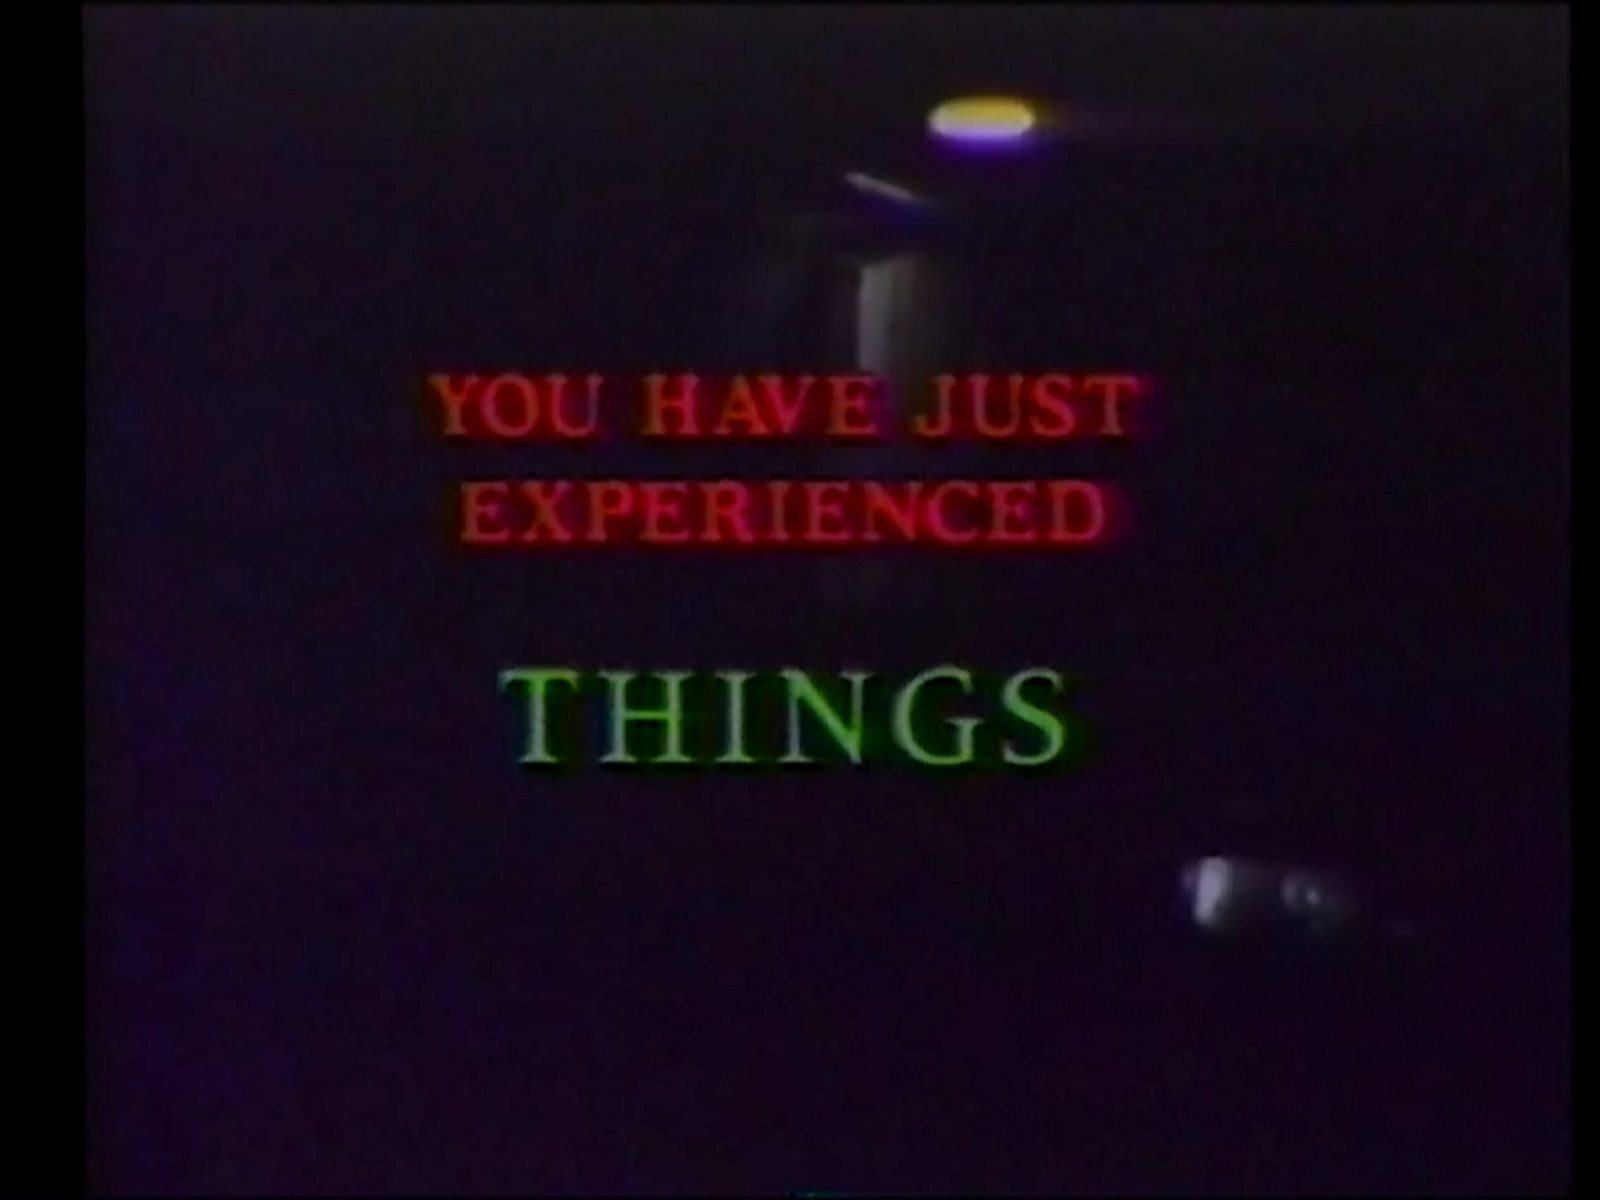 http://sinsofcinema.com/Images/Things/Things%20Gillis%20Intervision%20Picture%20Corp%20DVD%20Cover.jpg